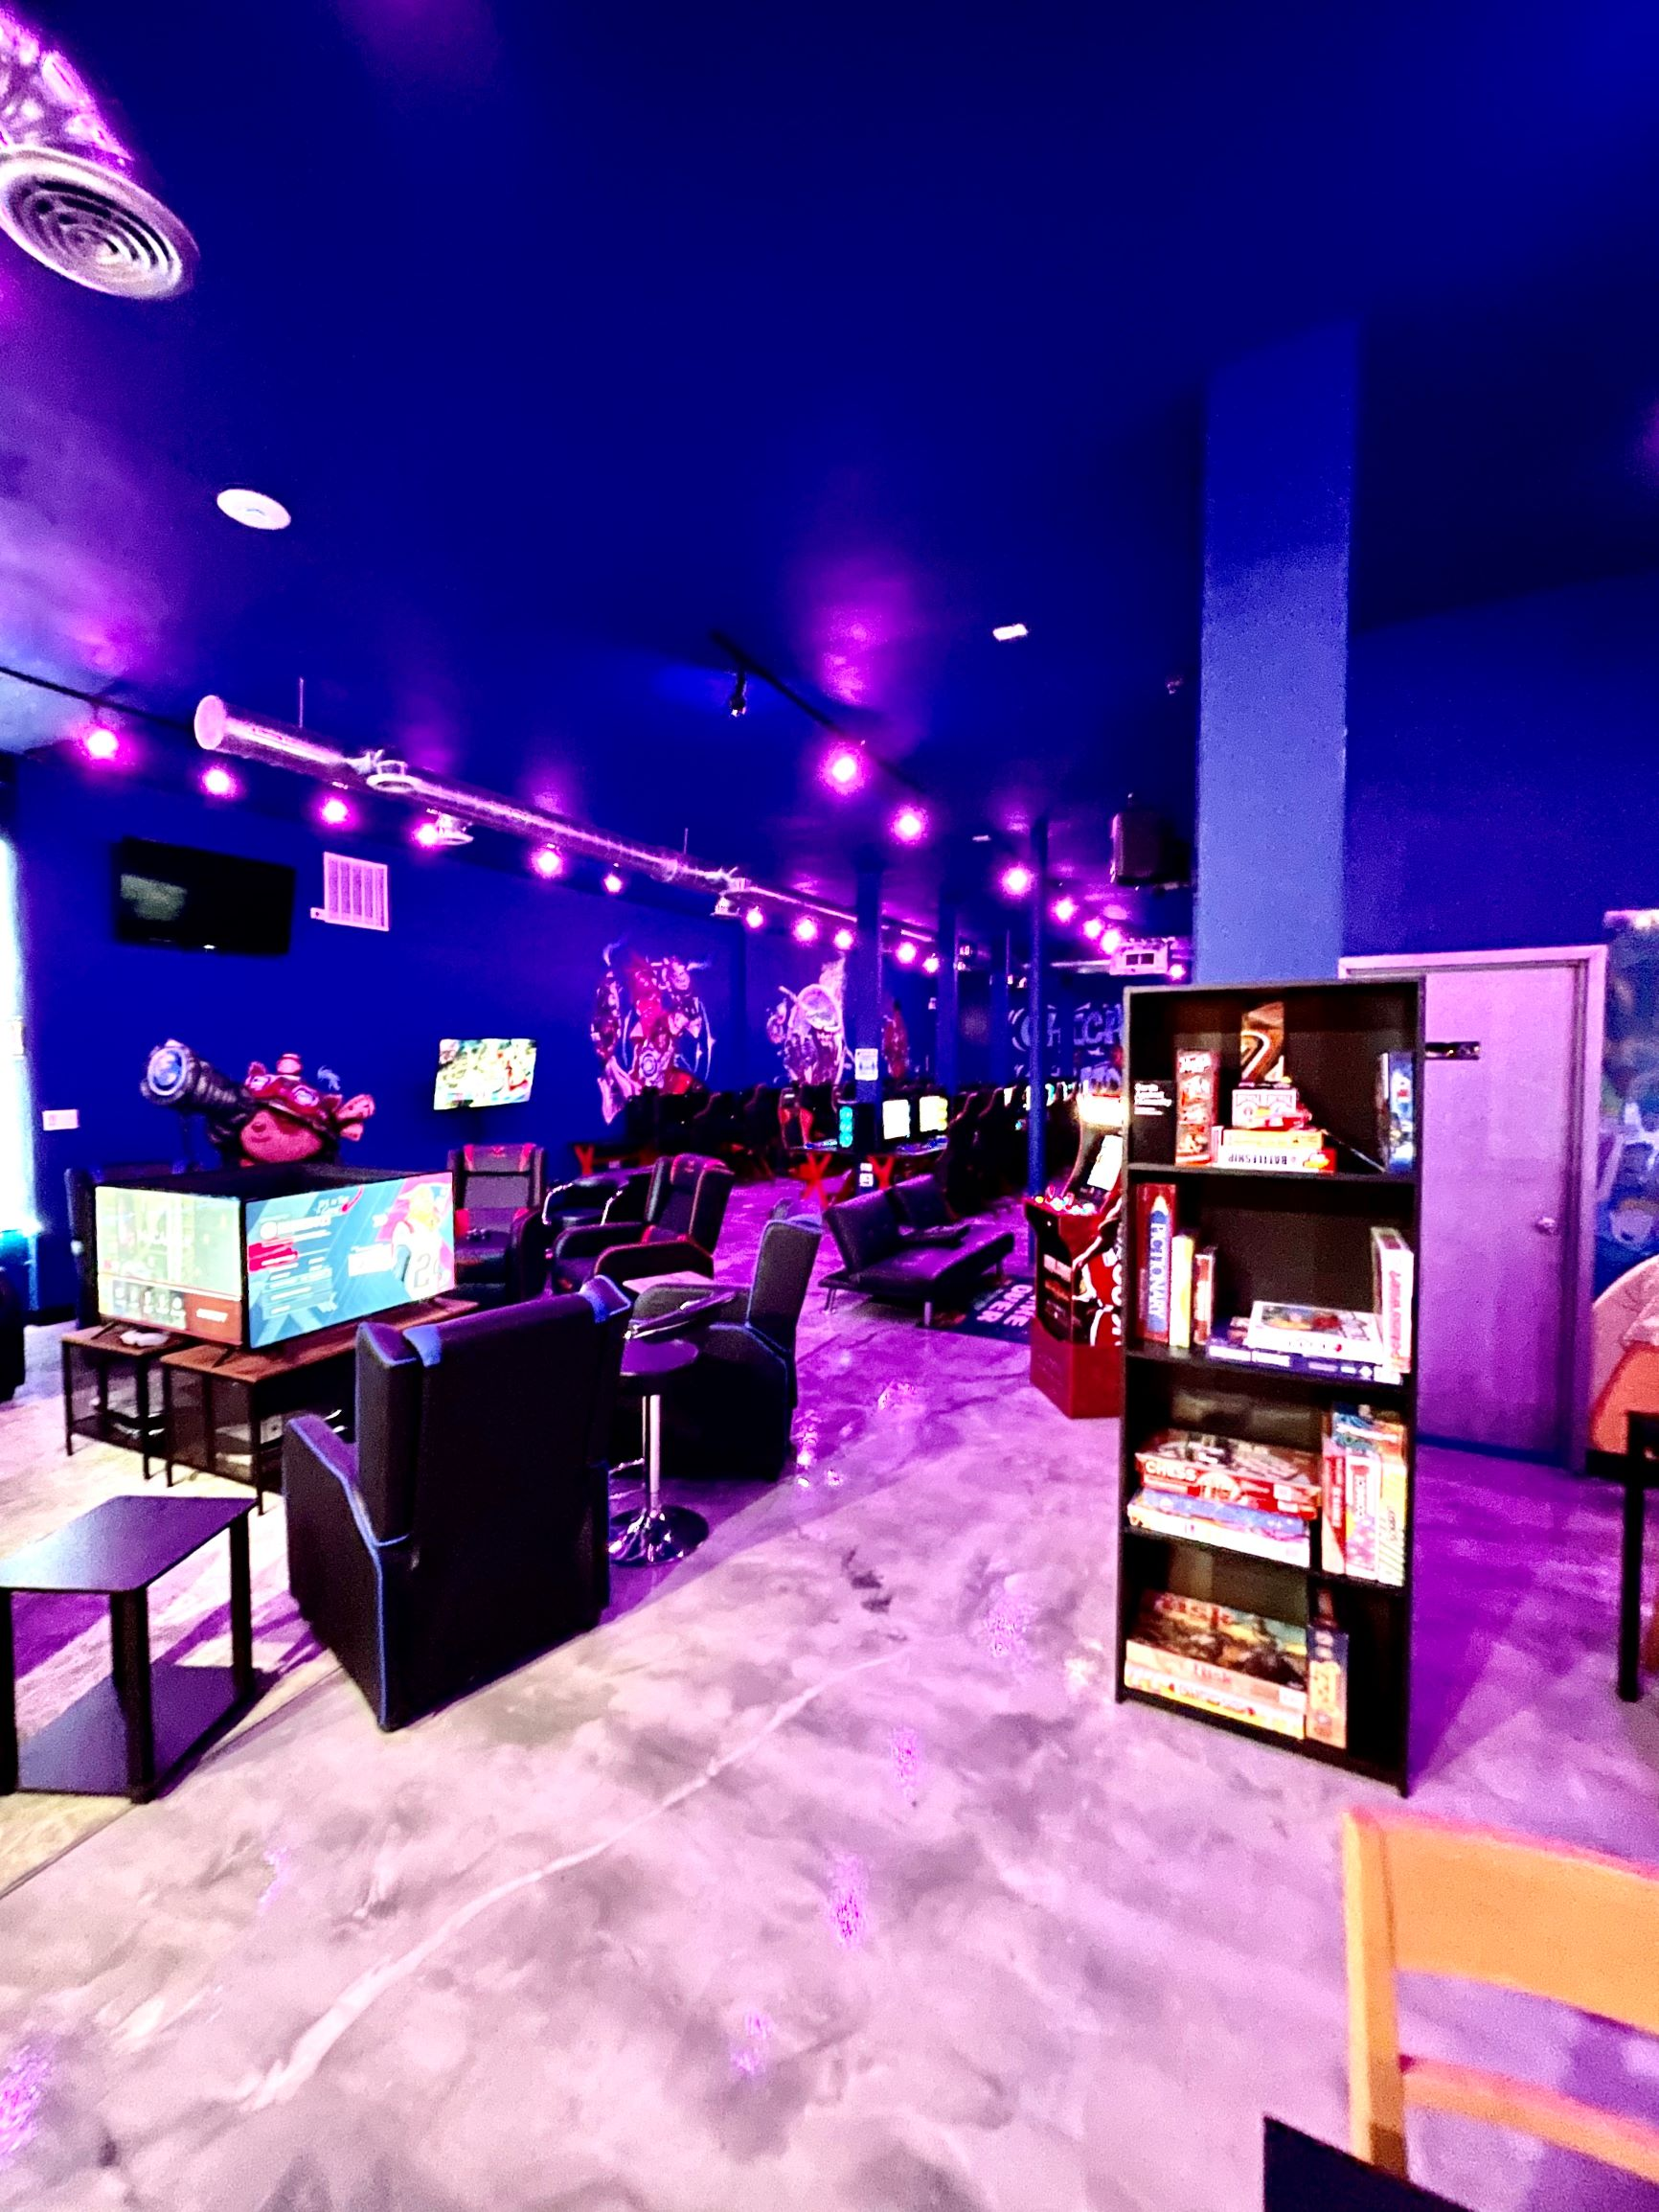 CHICAGO ESPORTS GAMING LOUNGE